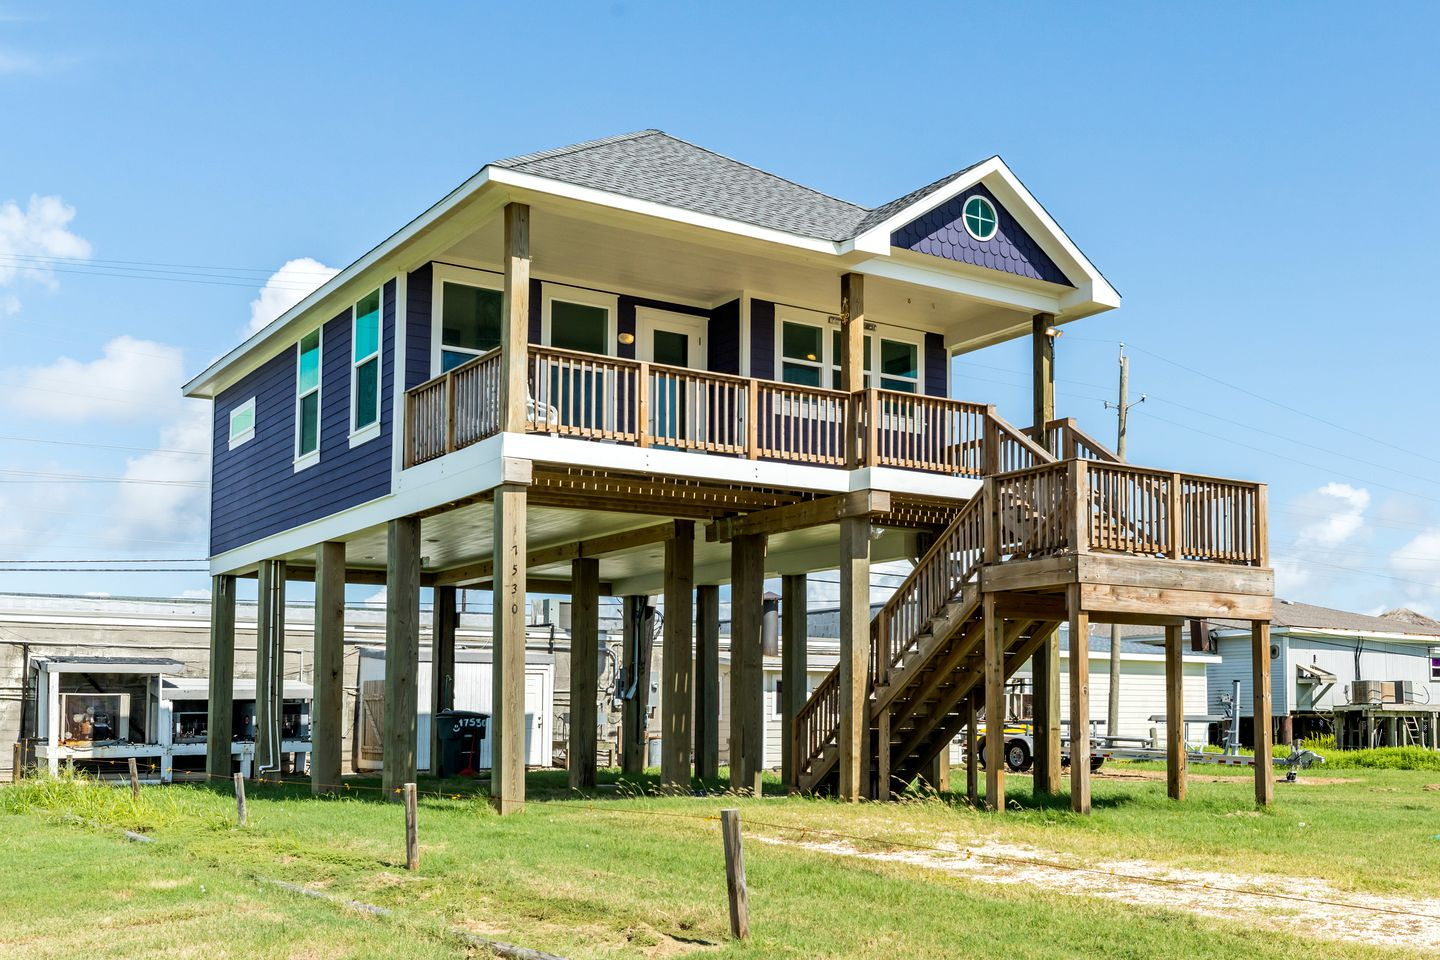 Getaway Vacation Rental near Galveston Texas